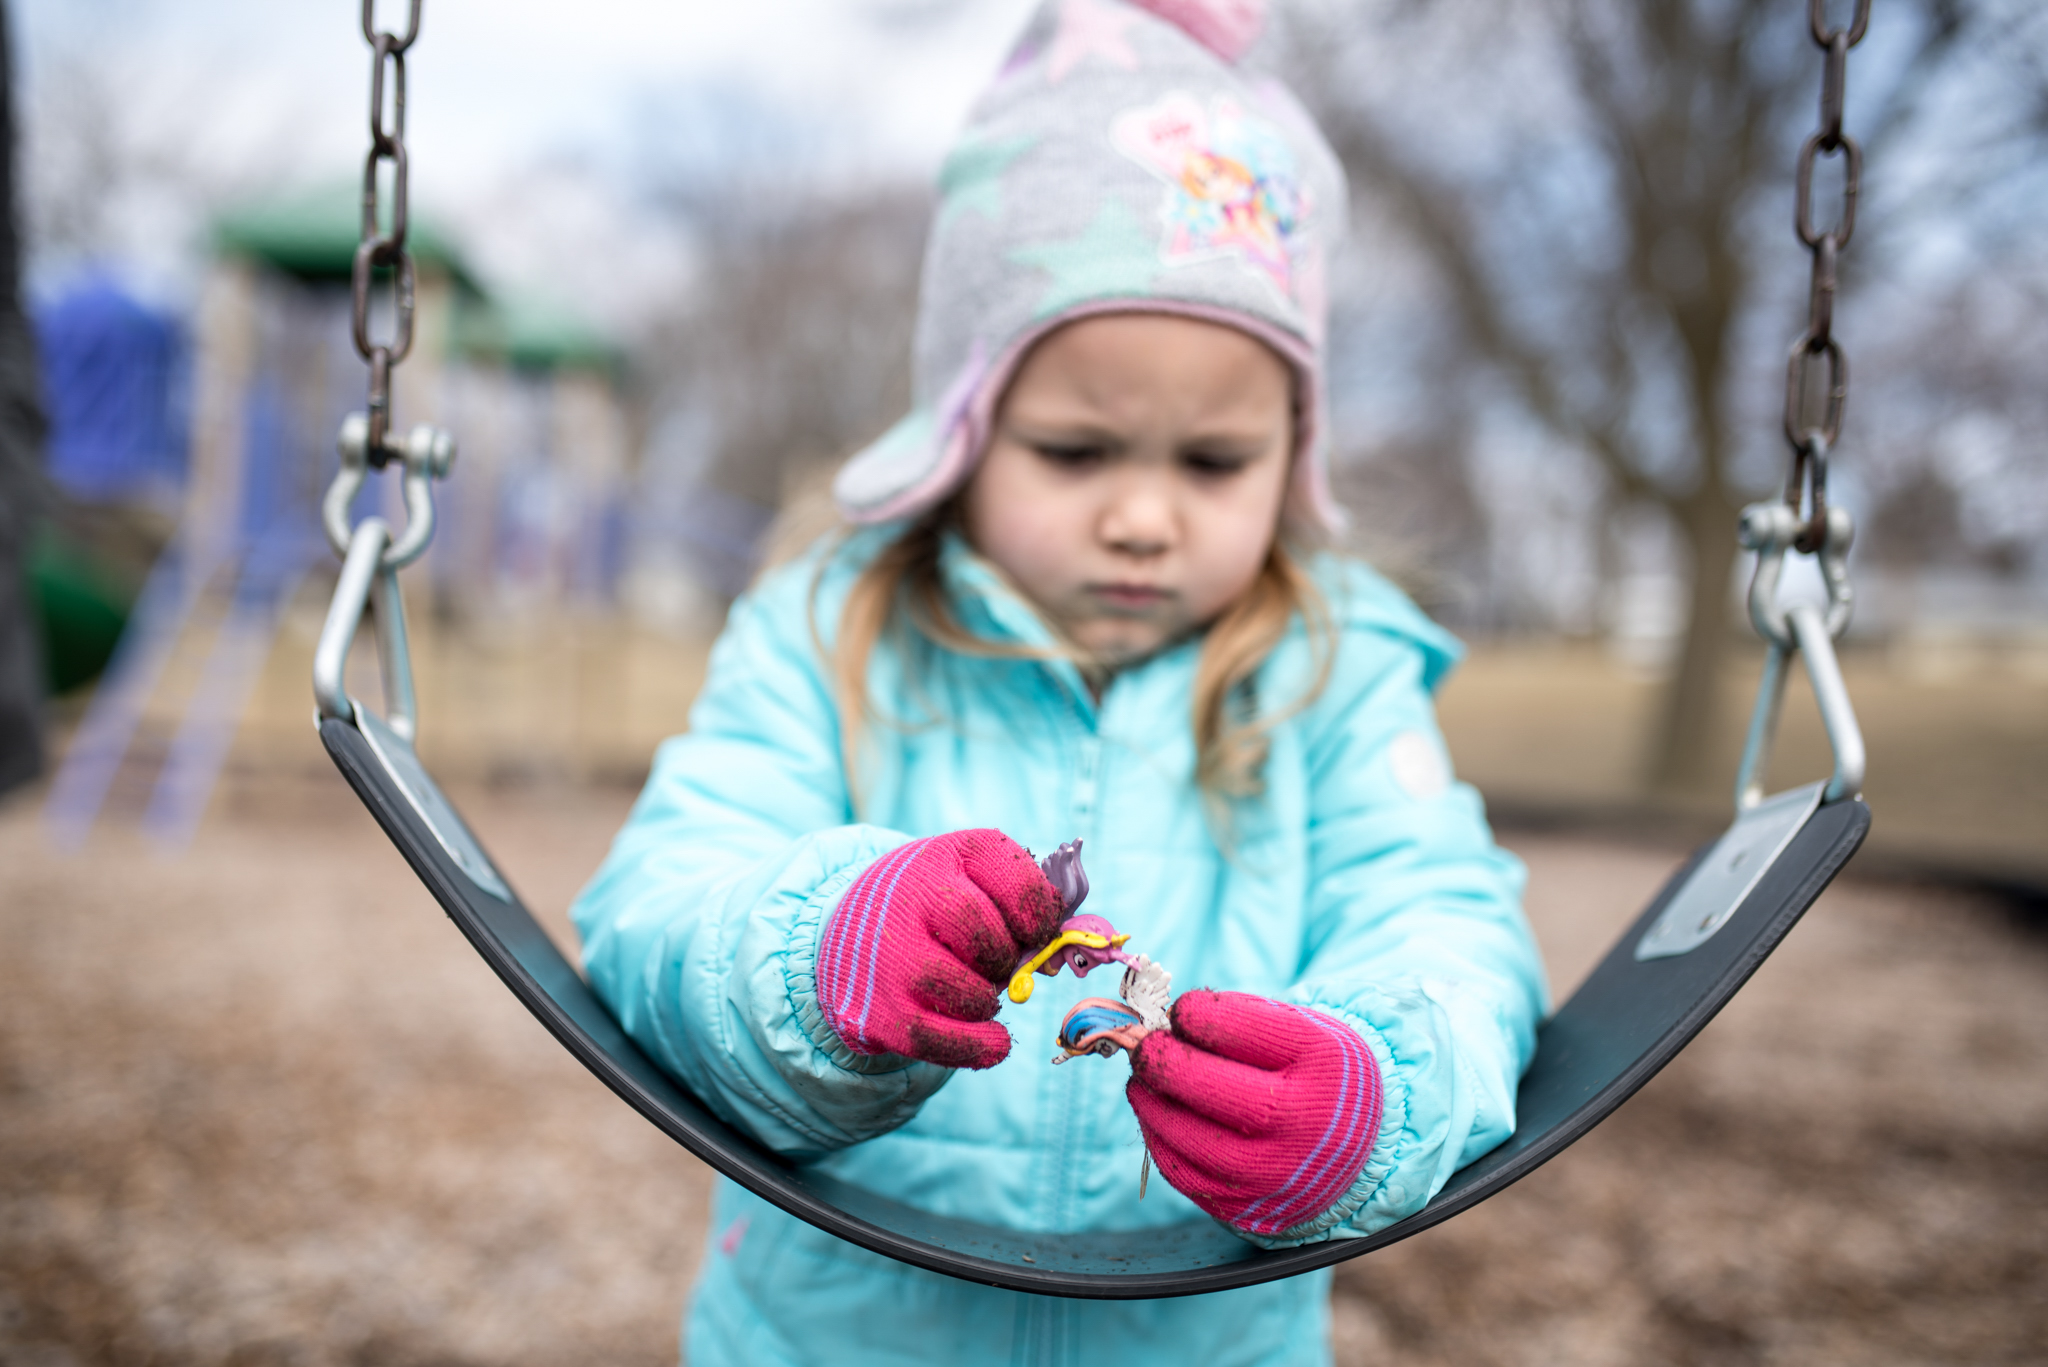 Young girl playing with pony toys on a swing at a park